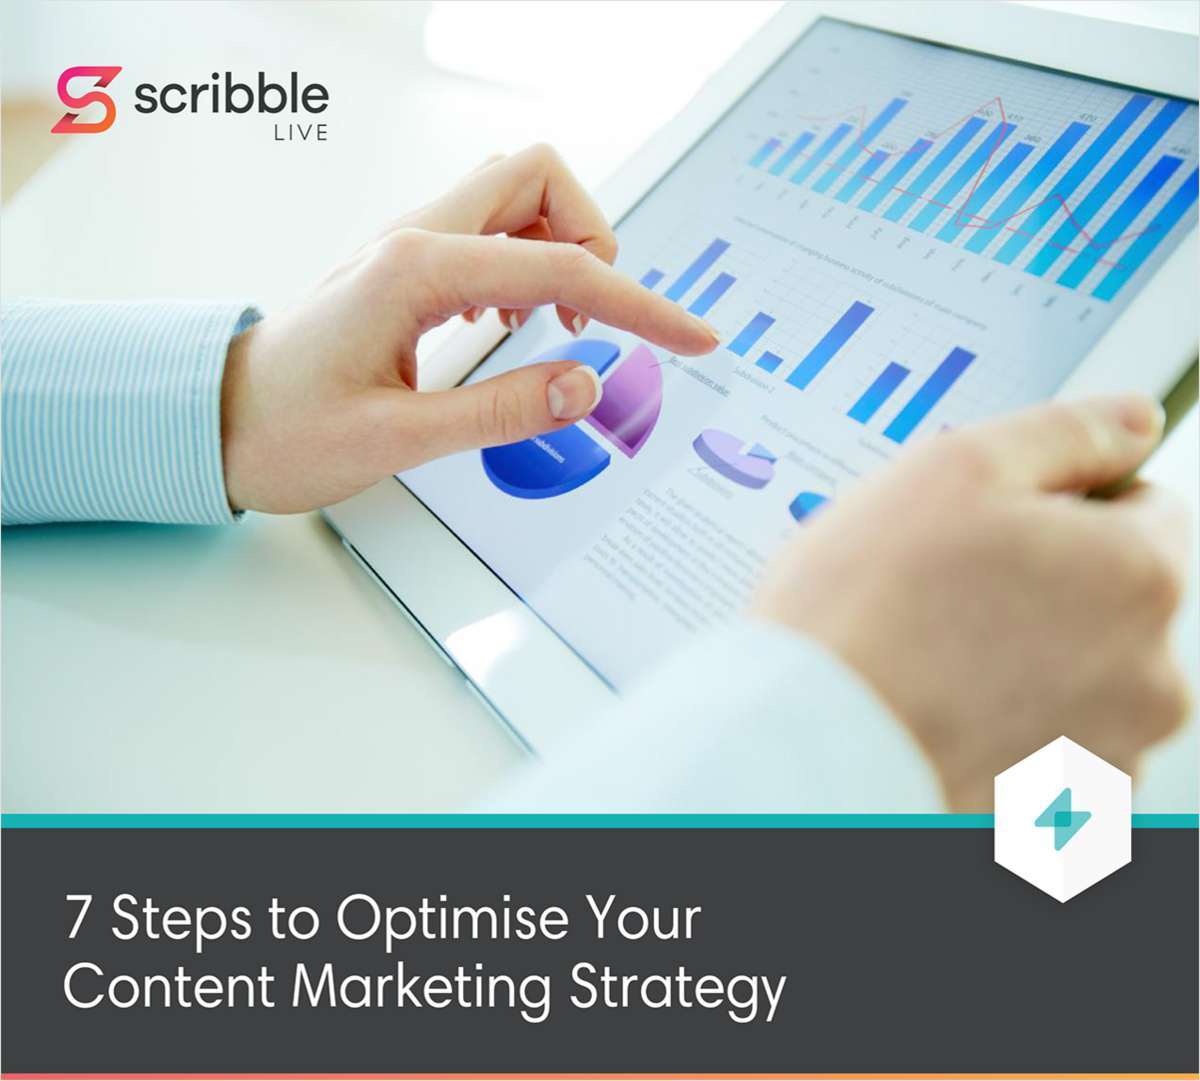 7 Steps to Optimise Your Content Marketing Strategy